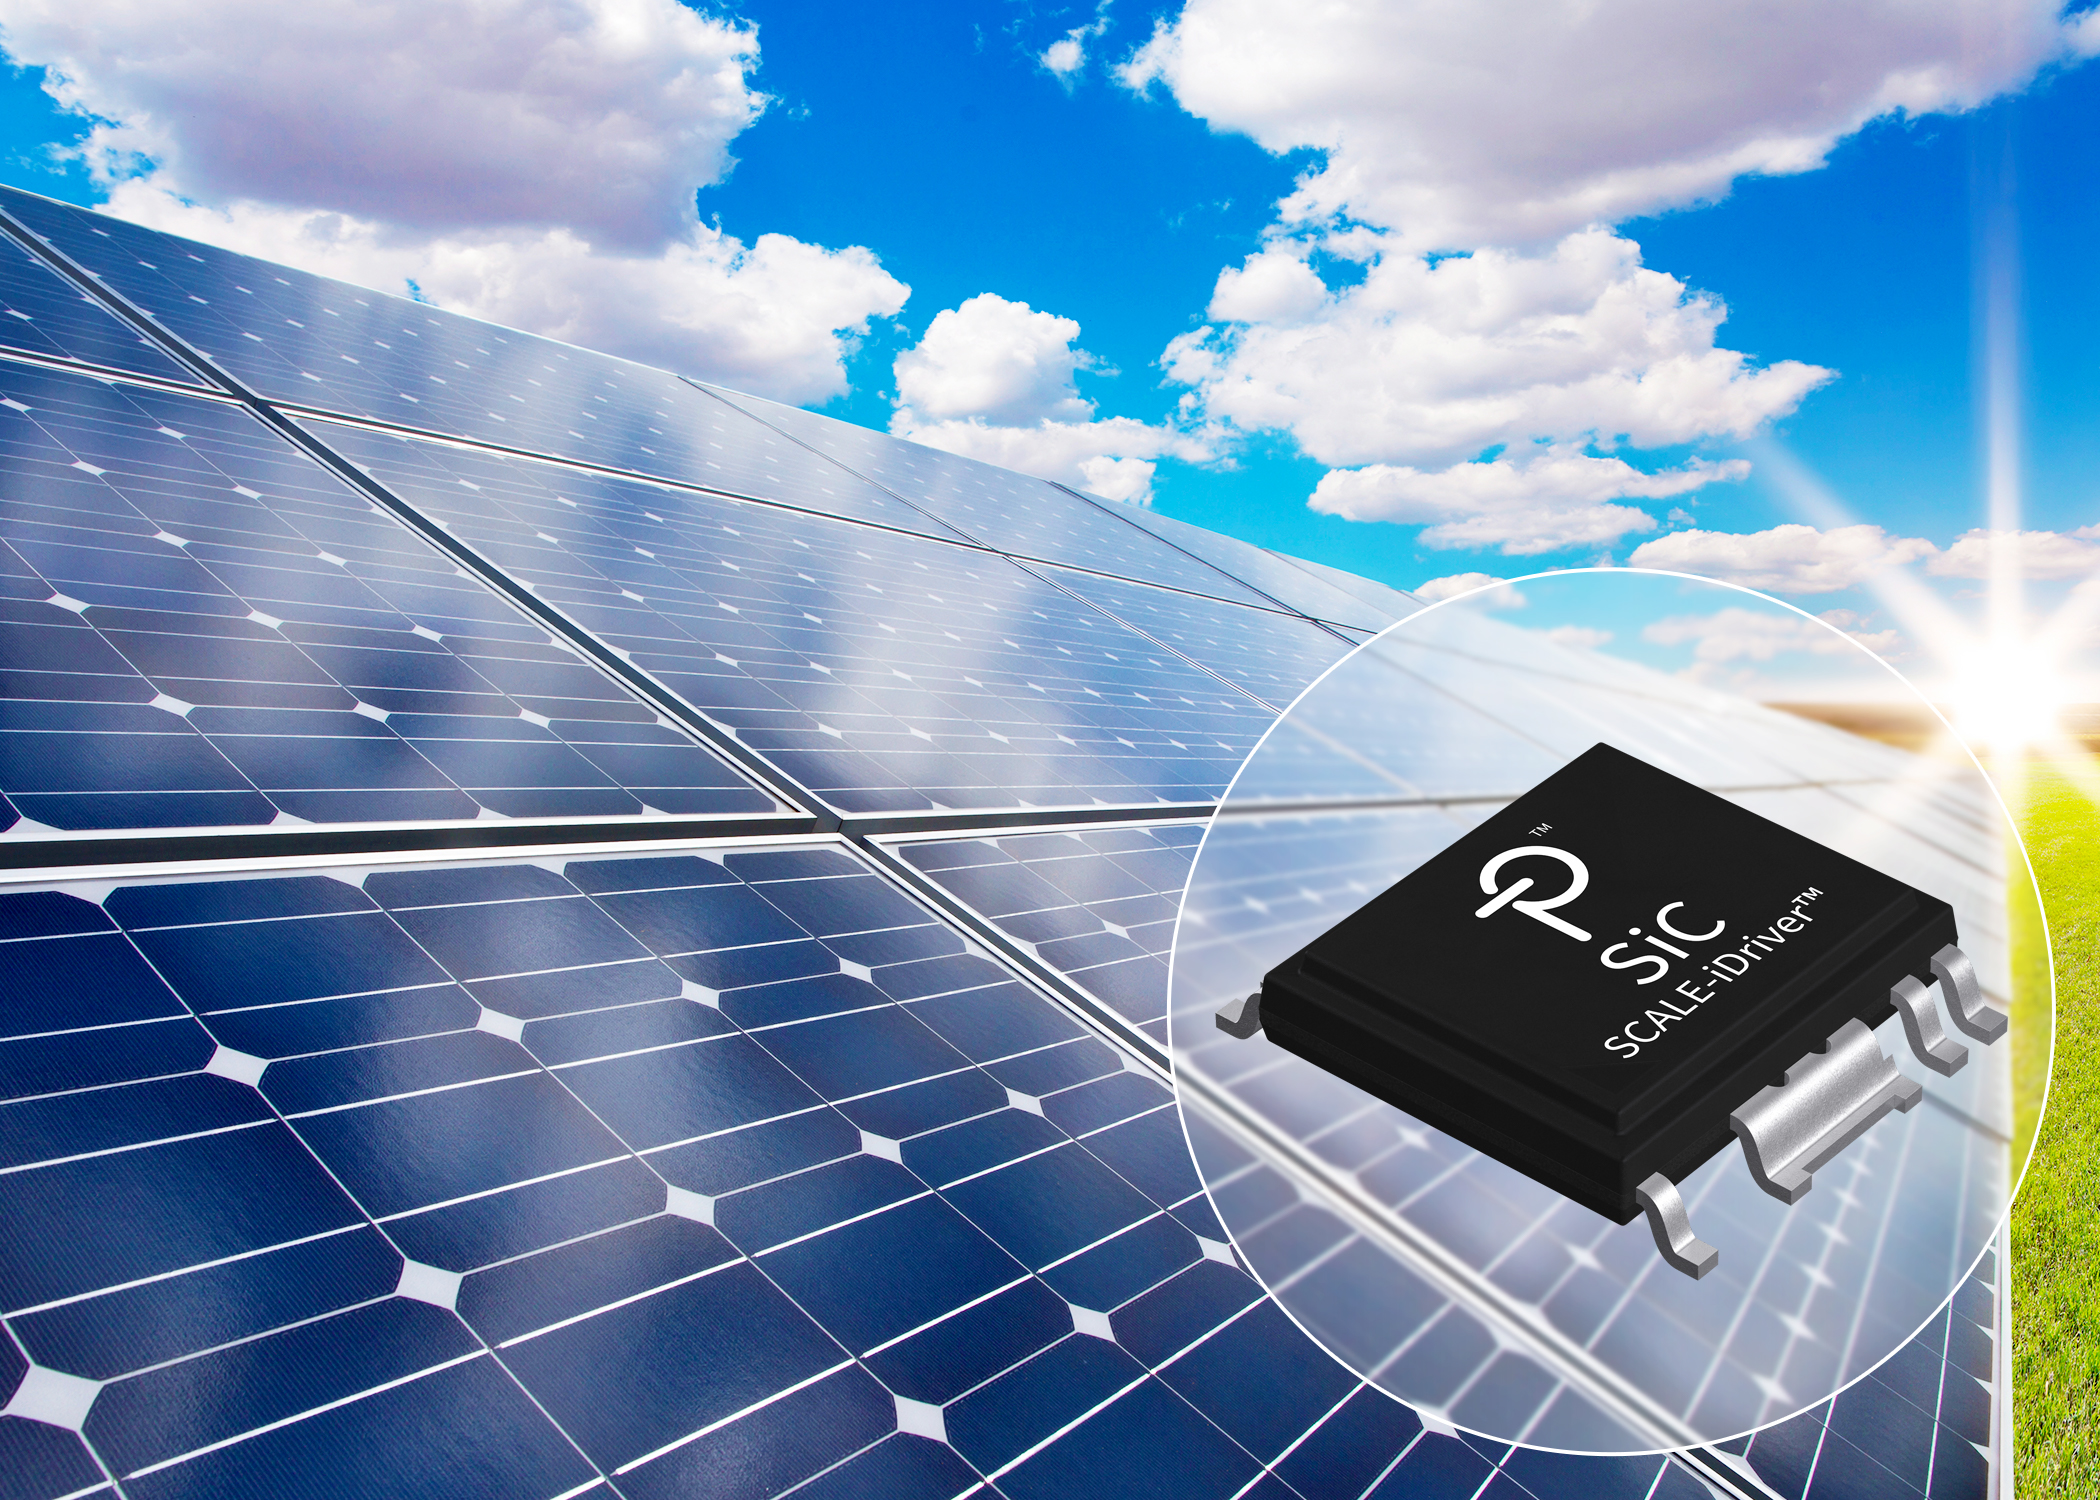 SiC-MOSFET Gate Driver Maximizes Efficiency, Improves Safety